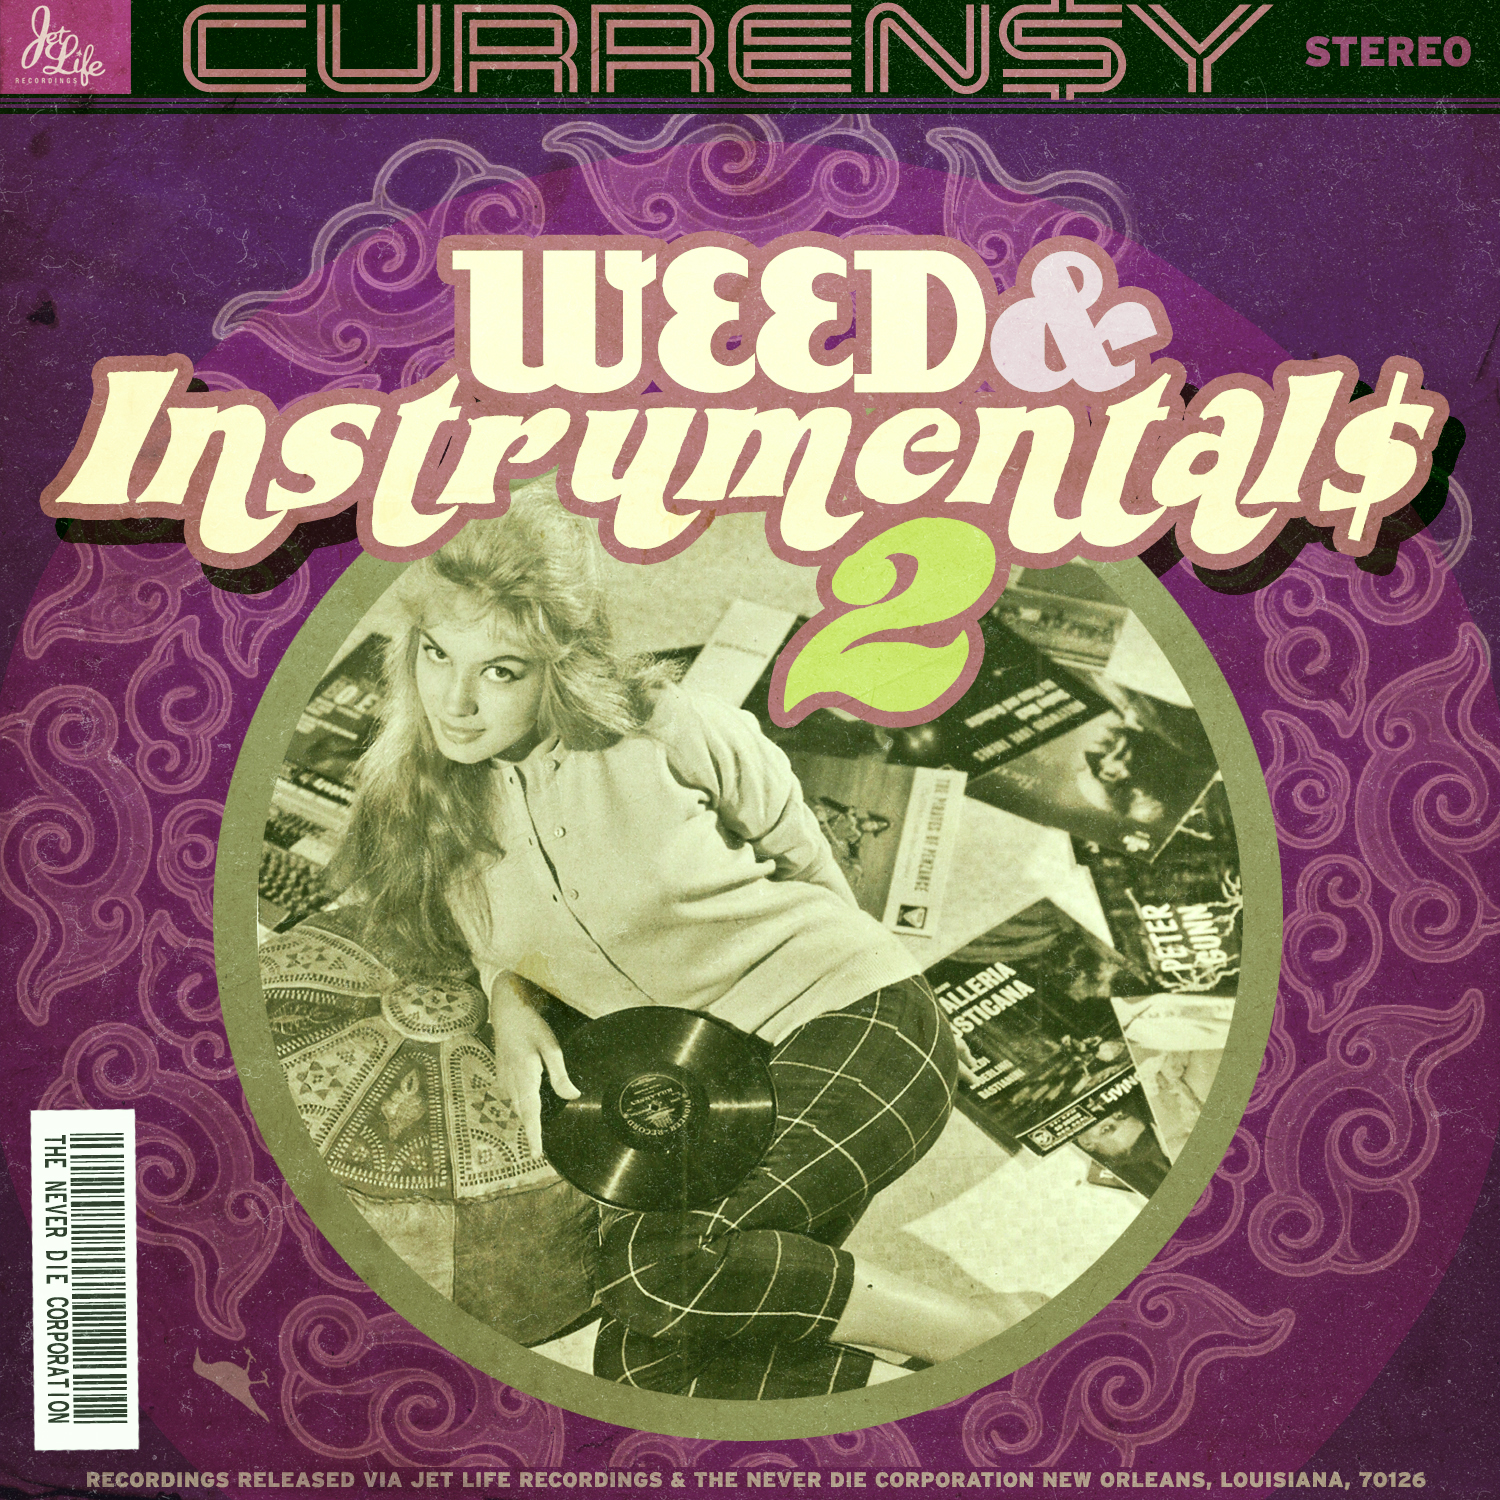 Curren$y - Weed & Instrumentals 2 Cover Art